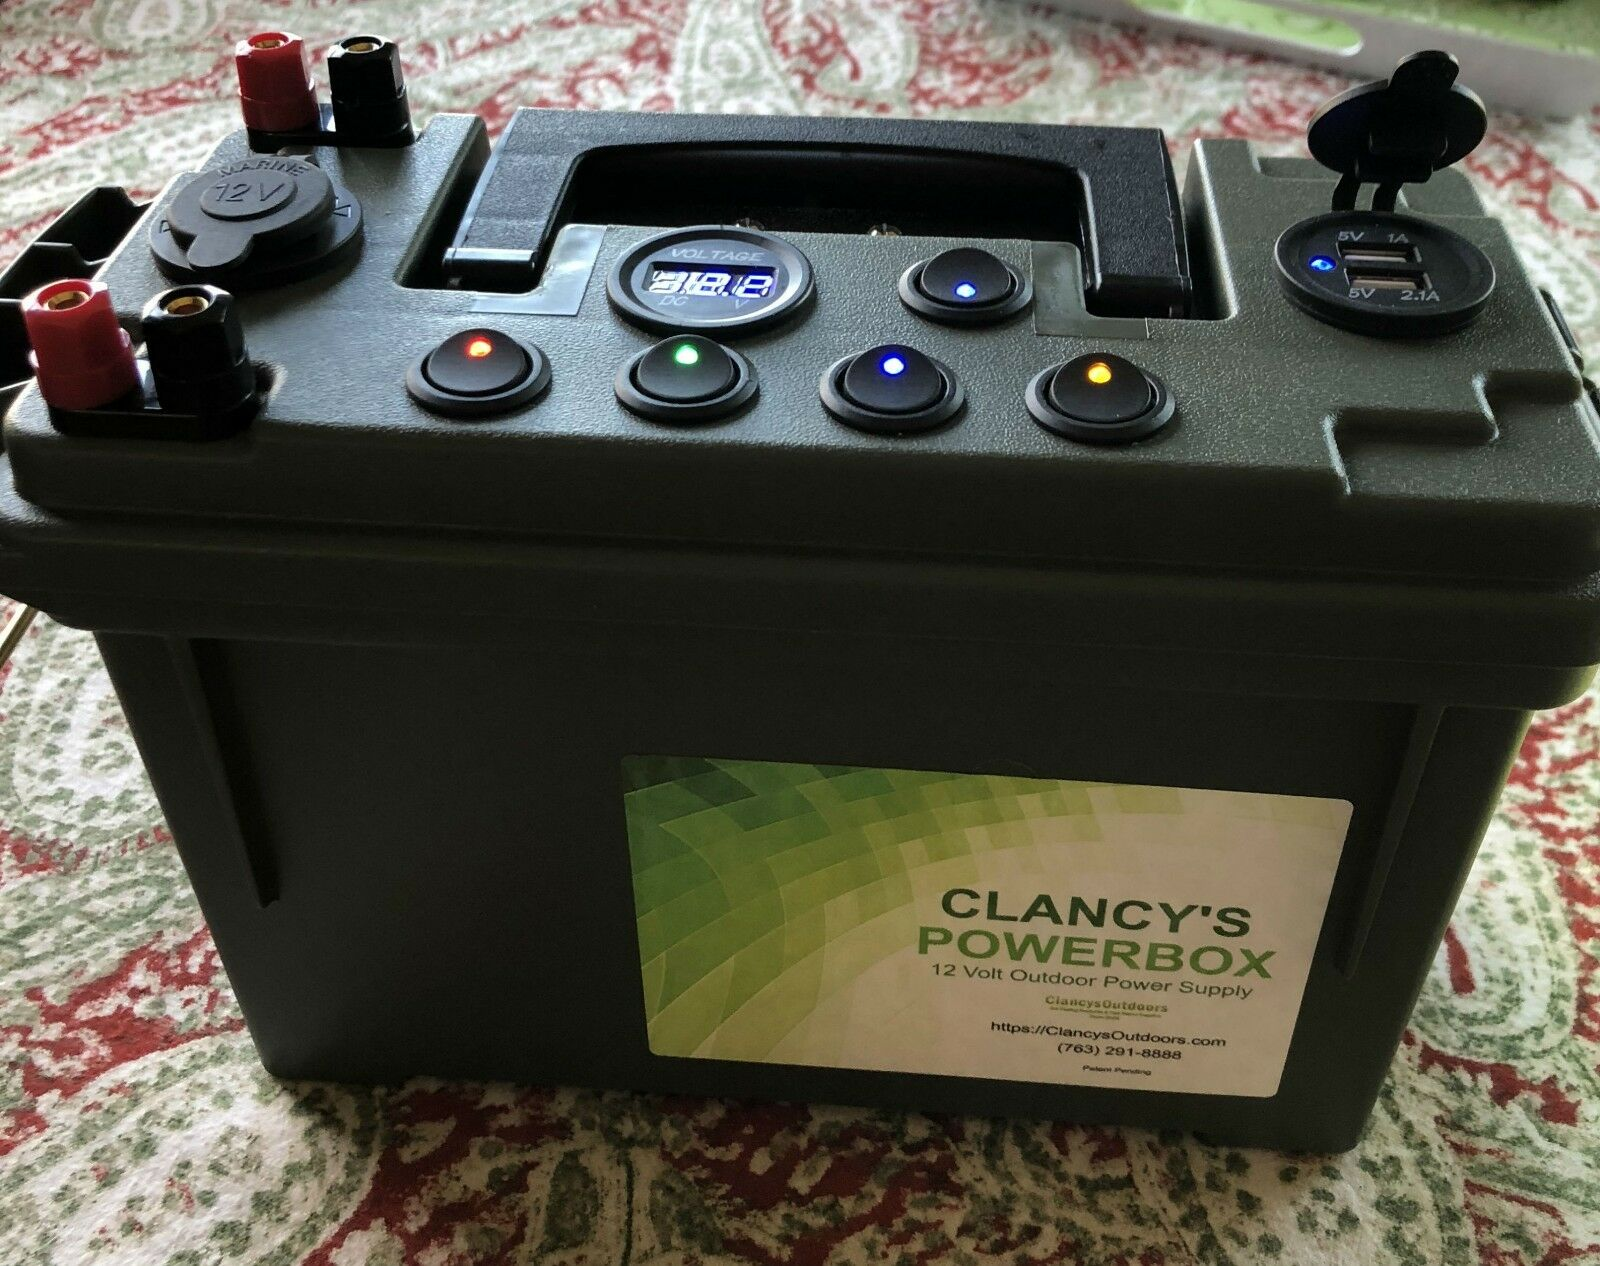 Clancy's PowerBox 12 volt power supply for  ice fishing camping hunting kayaking  cheap wholesale